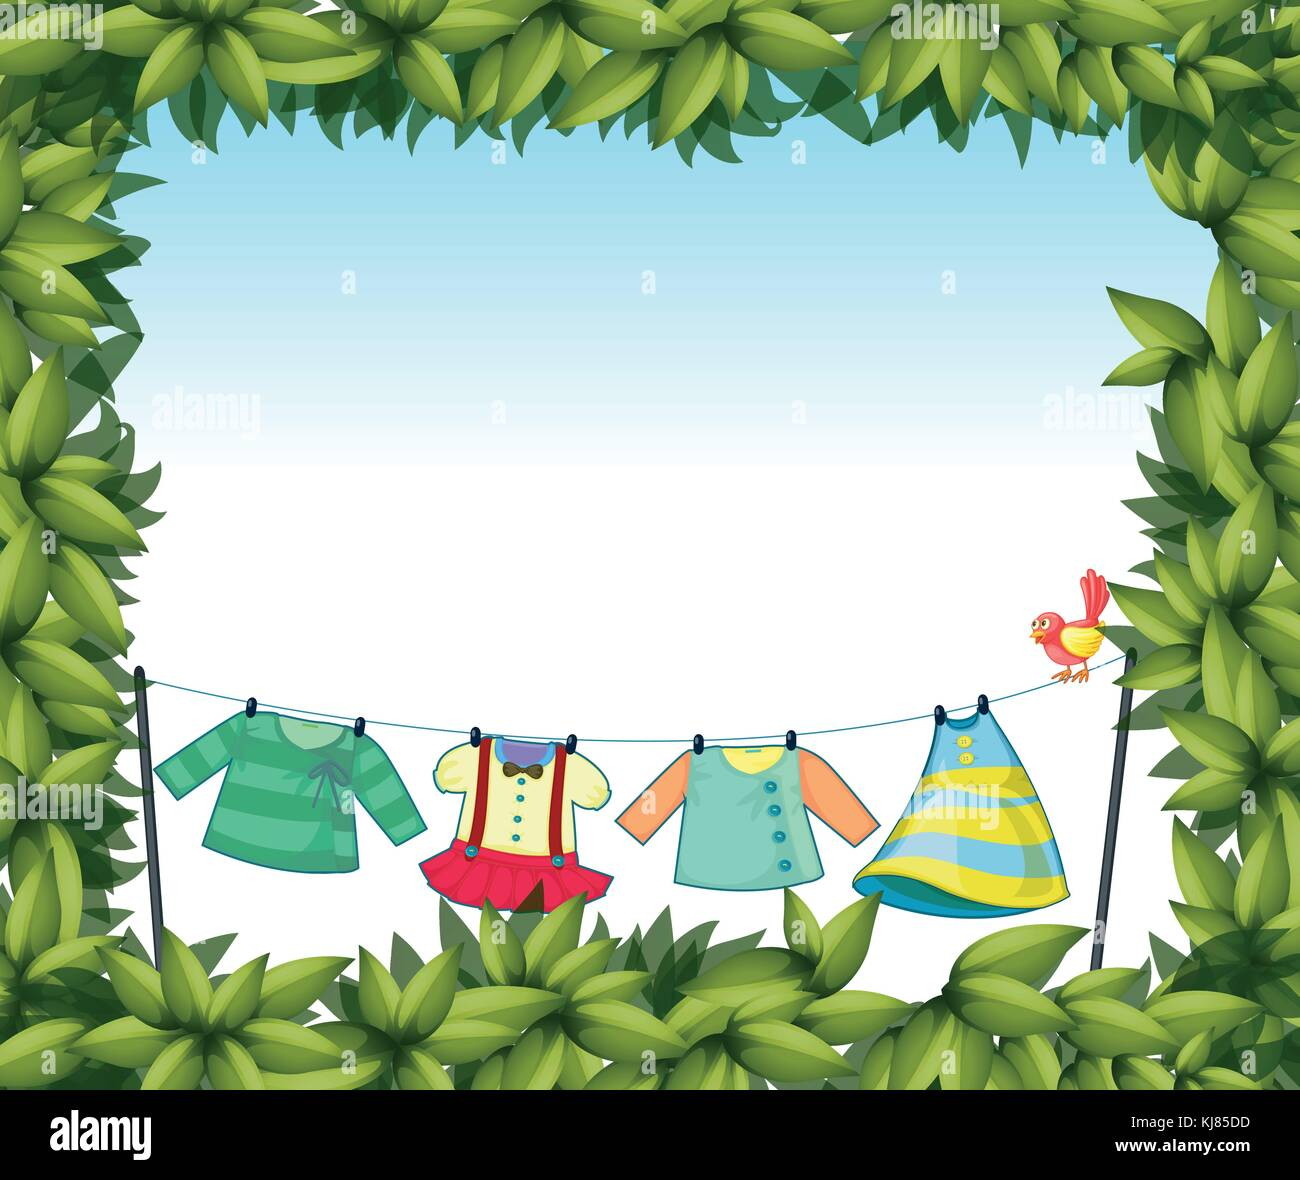 Illustration of a frame border with hanging clothes and a bird Stock ...